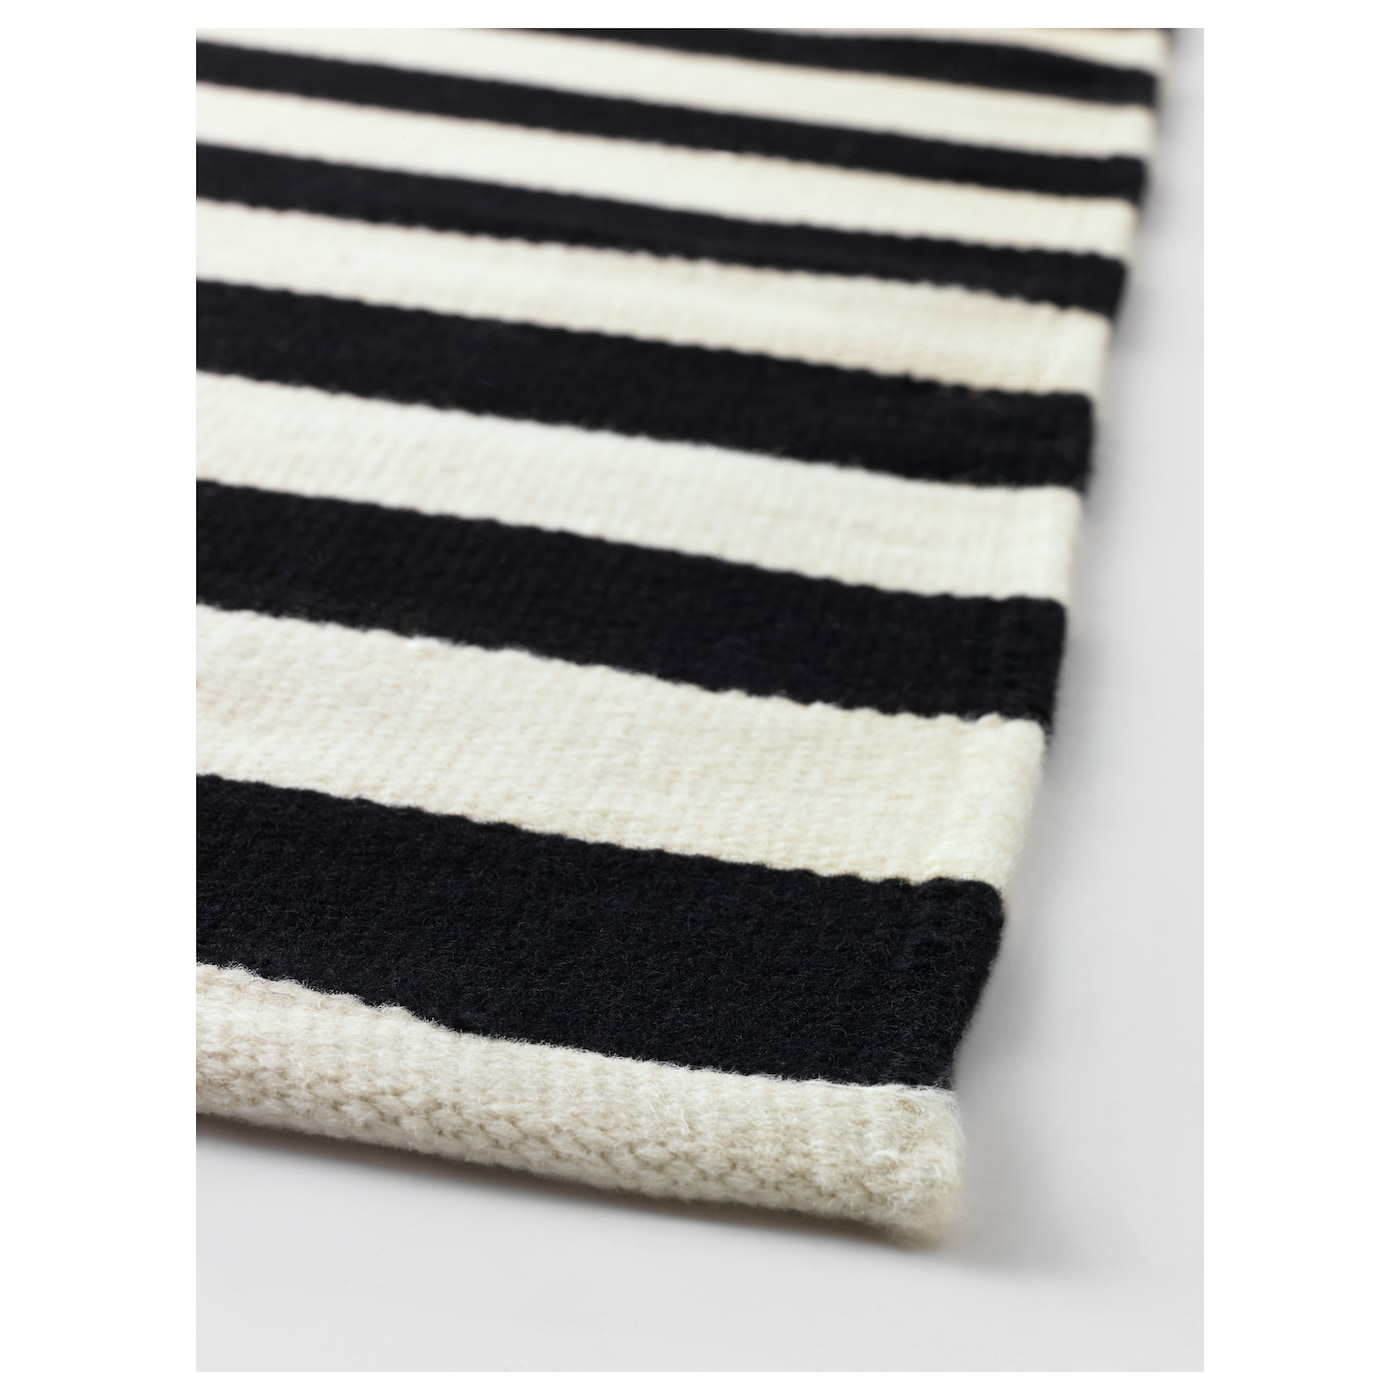 rug flatwoven handmade striped black off white 170x240 cm ikea